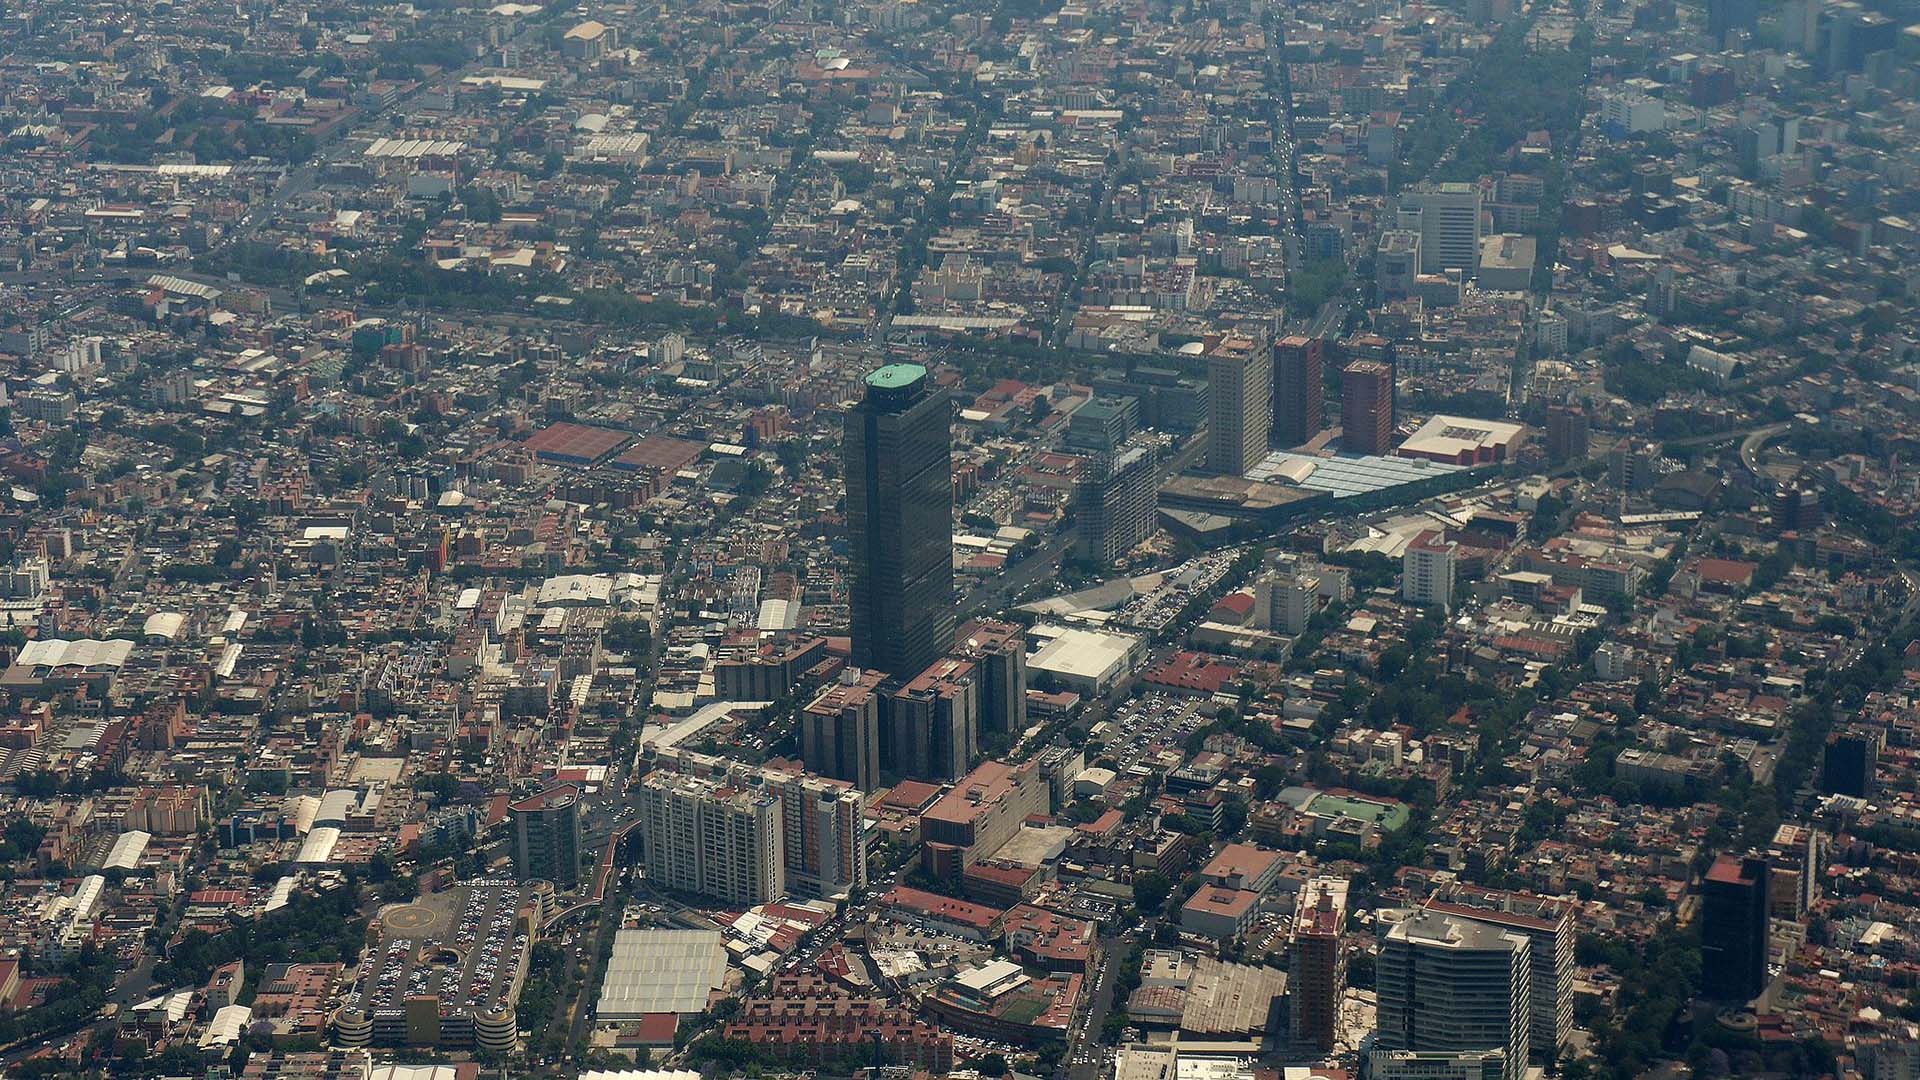 The Pemex Tower stands out in an aerial view of Mexico City.